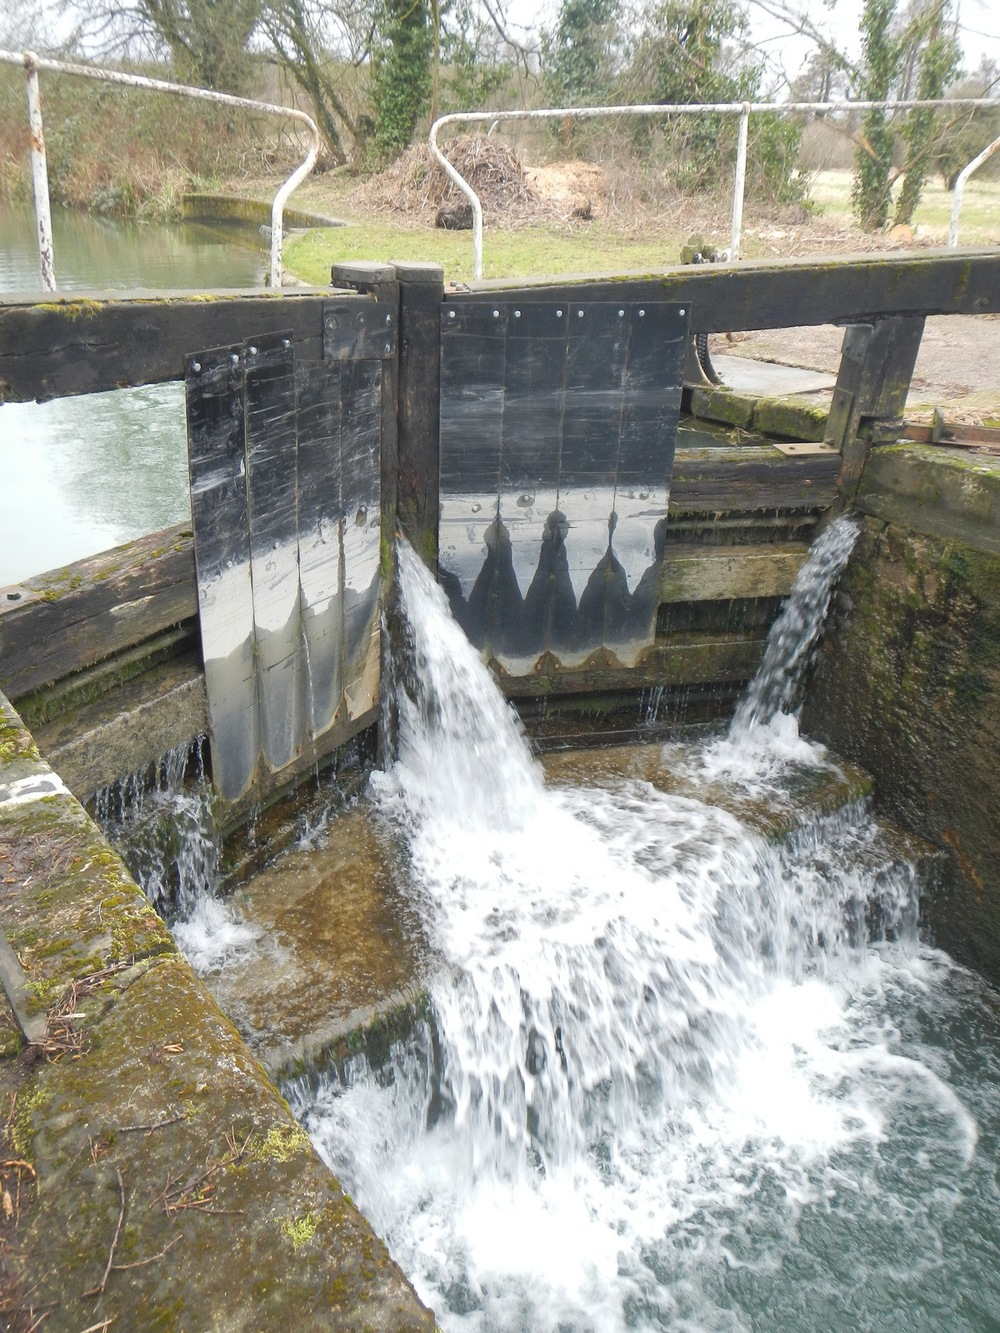 The Hungerford Lock